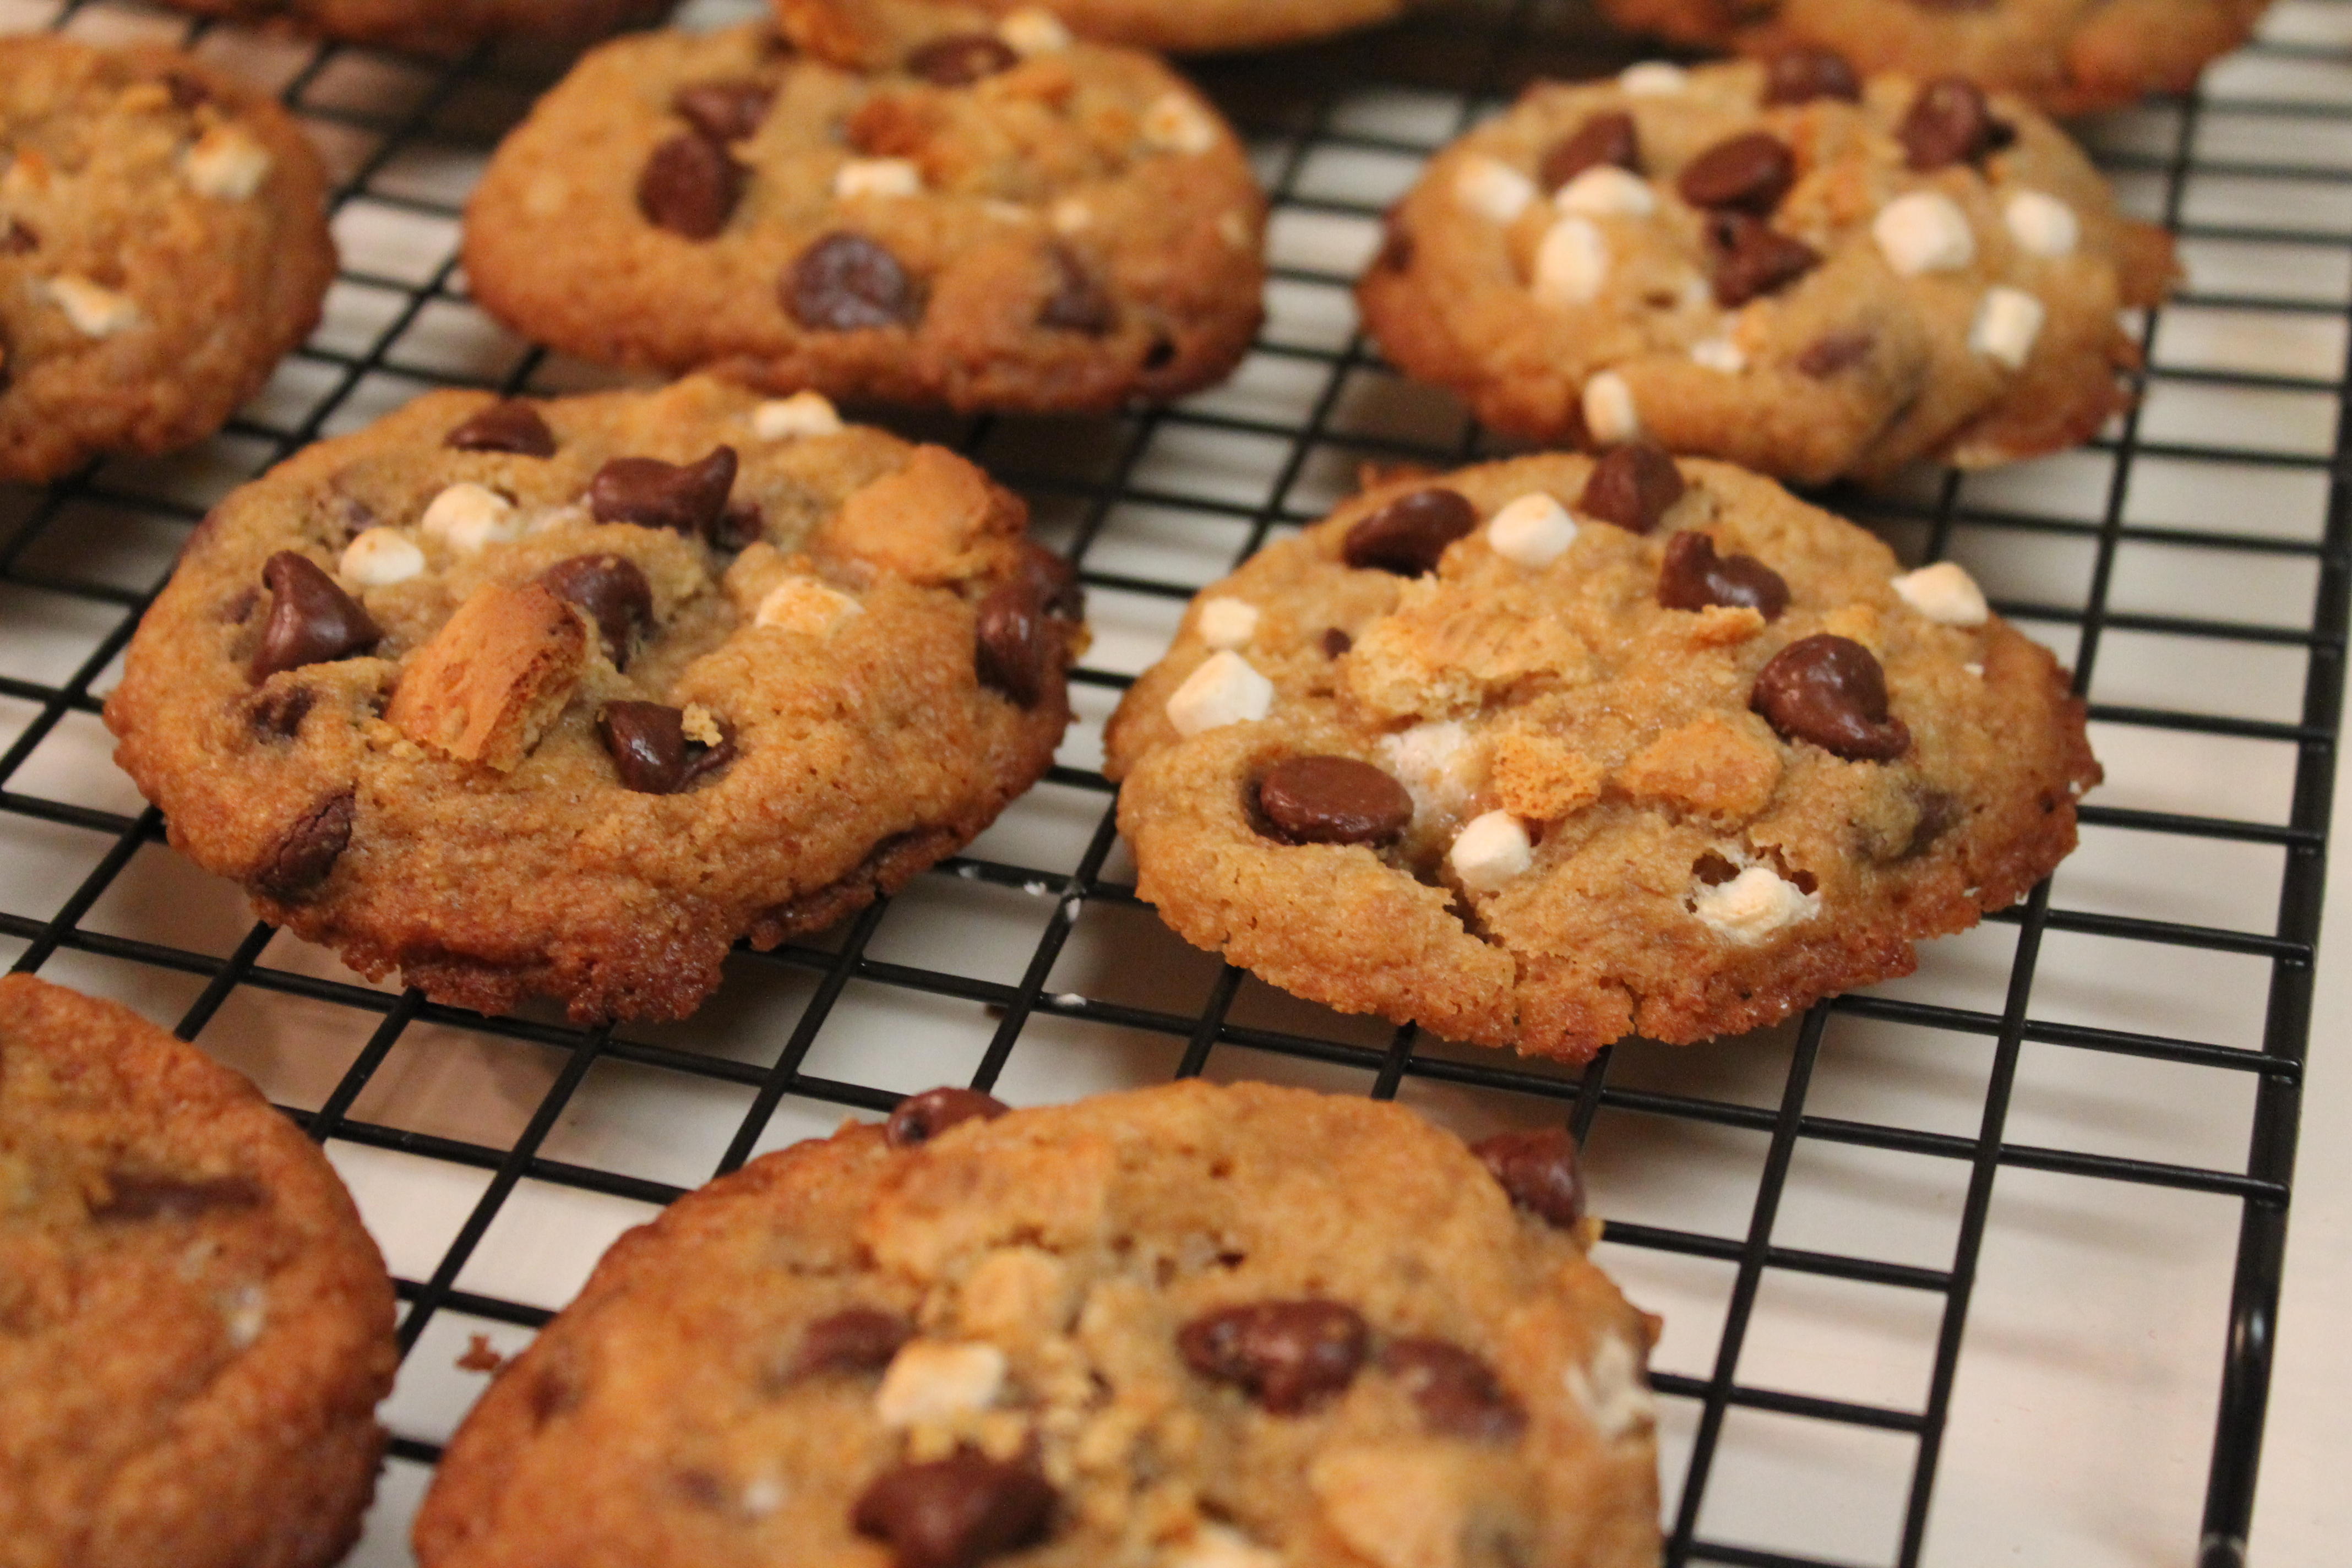 Soft Baked S'more cookies